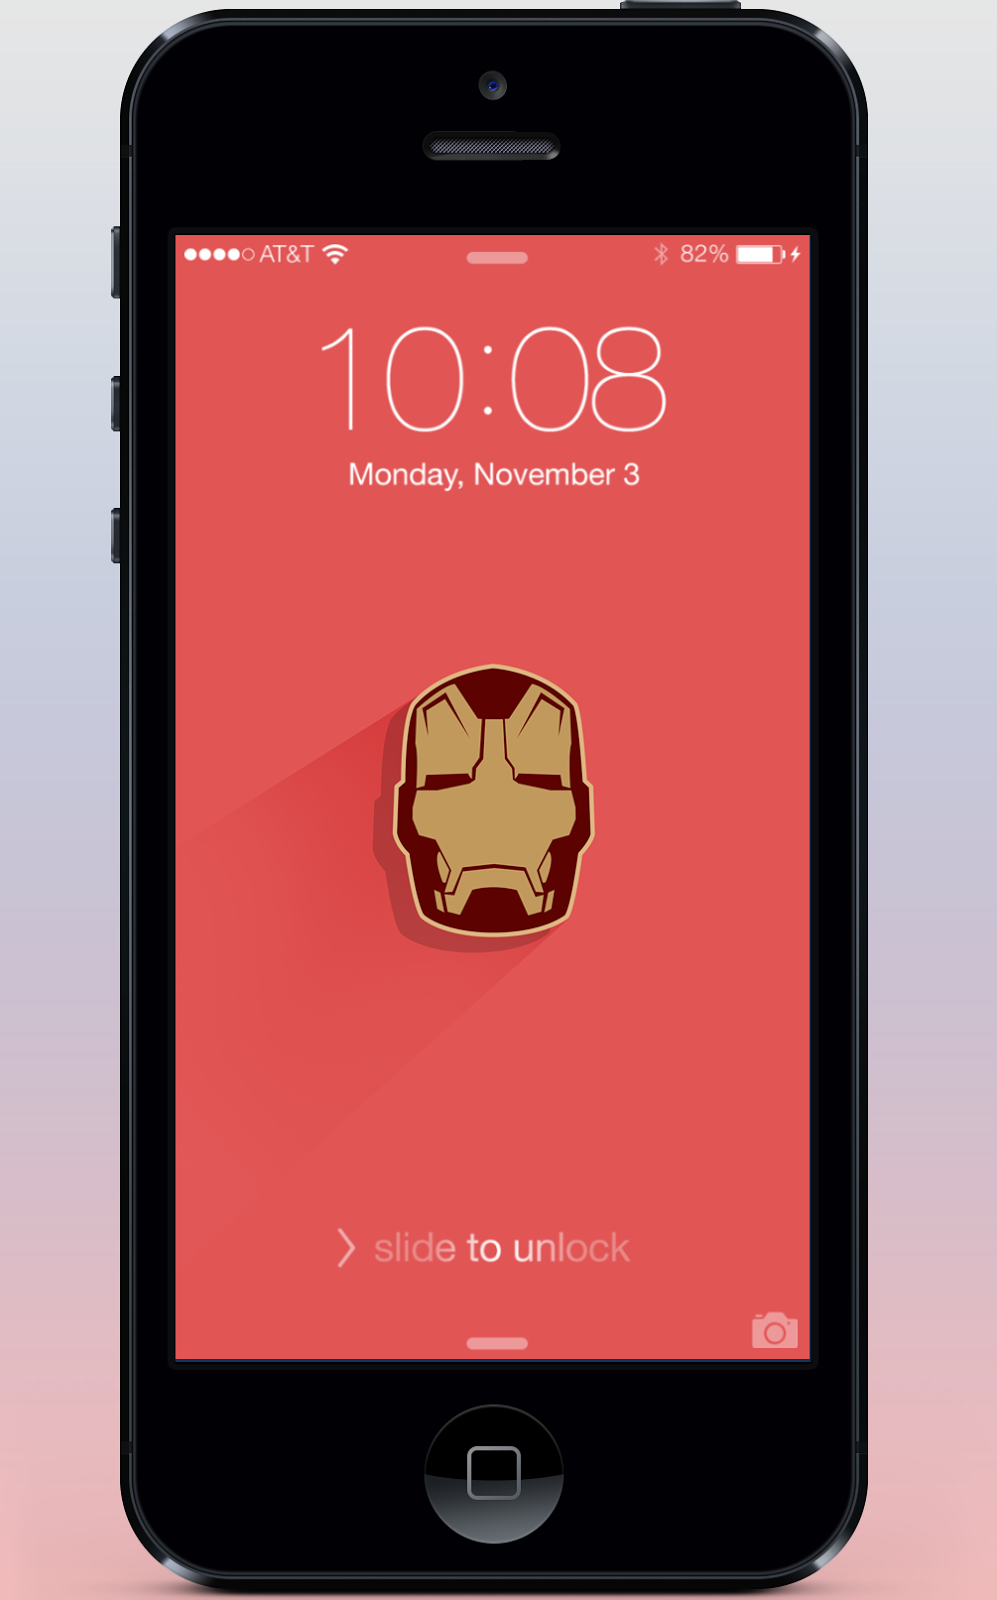 free wallpaper phone iron man logo wallpaper iphone 6 plus. Black Bedroom Furniture Sets. Home Design Ideas